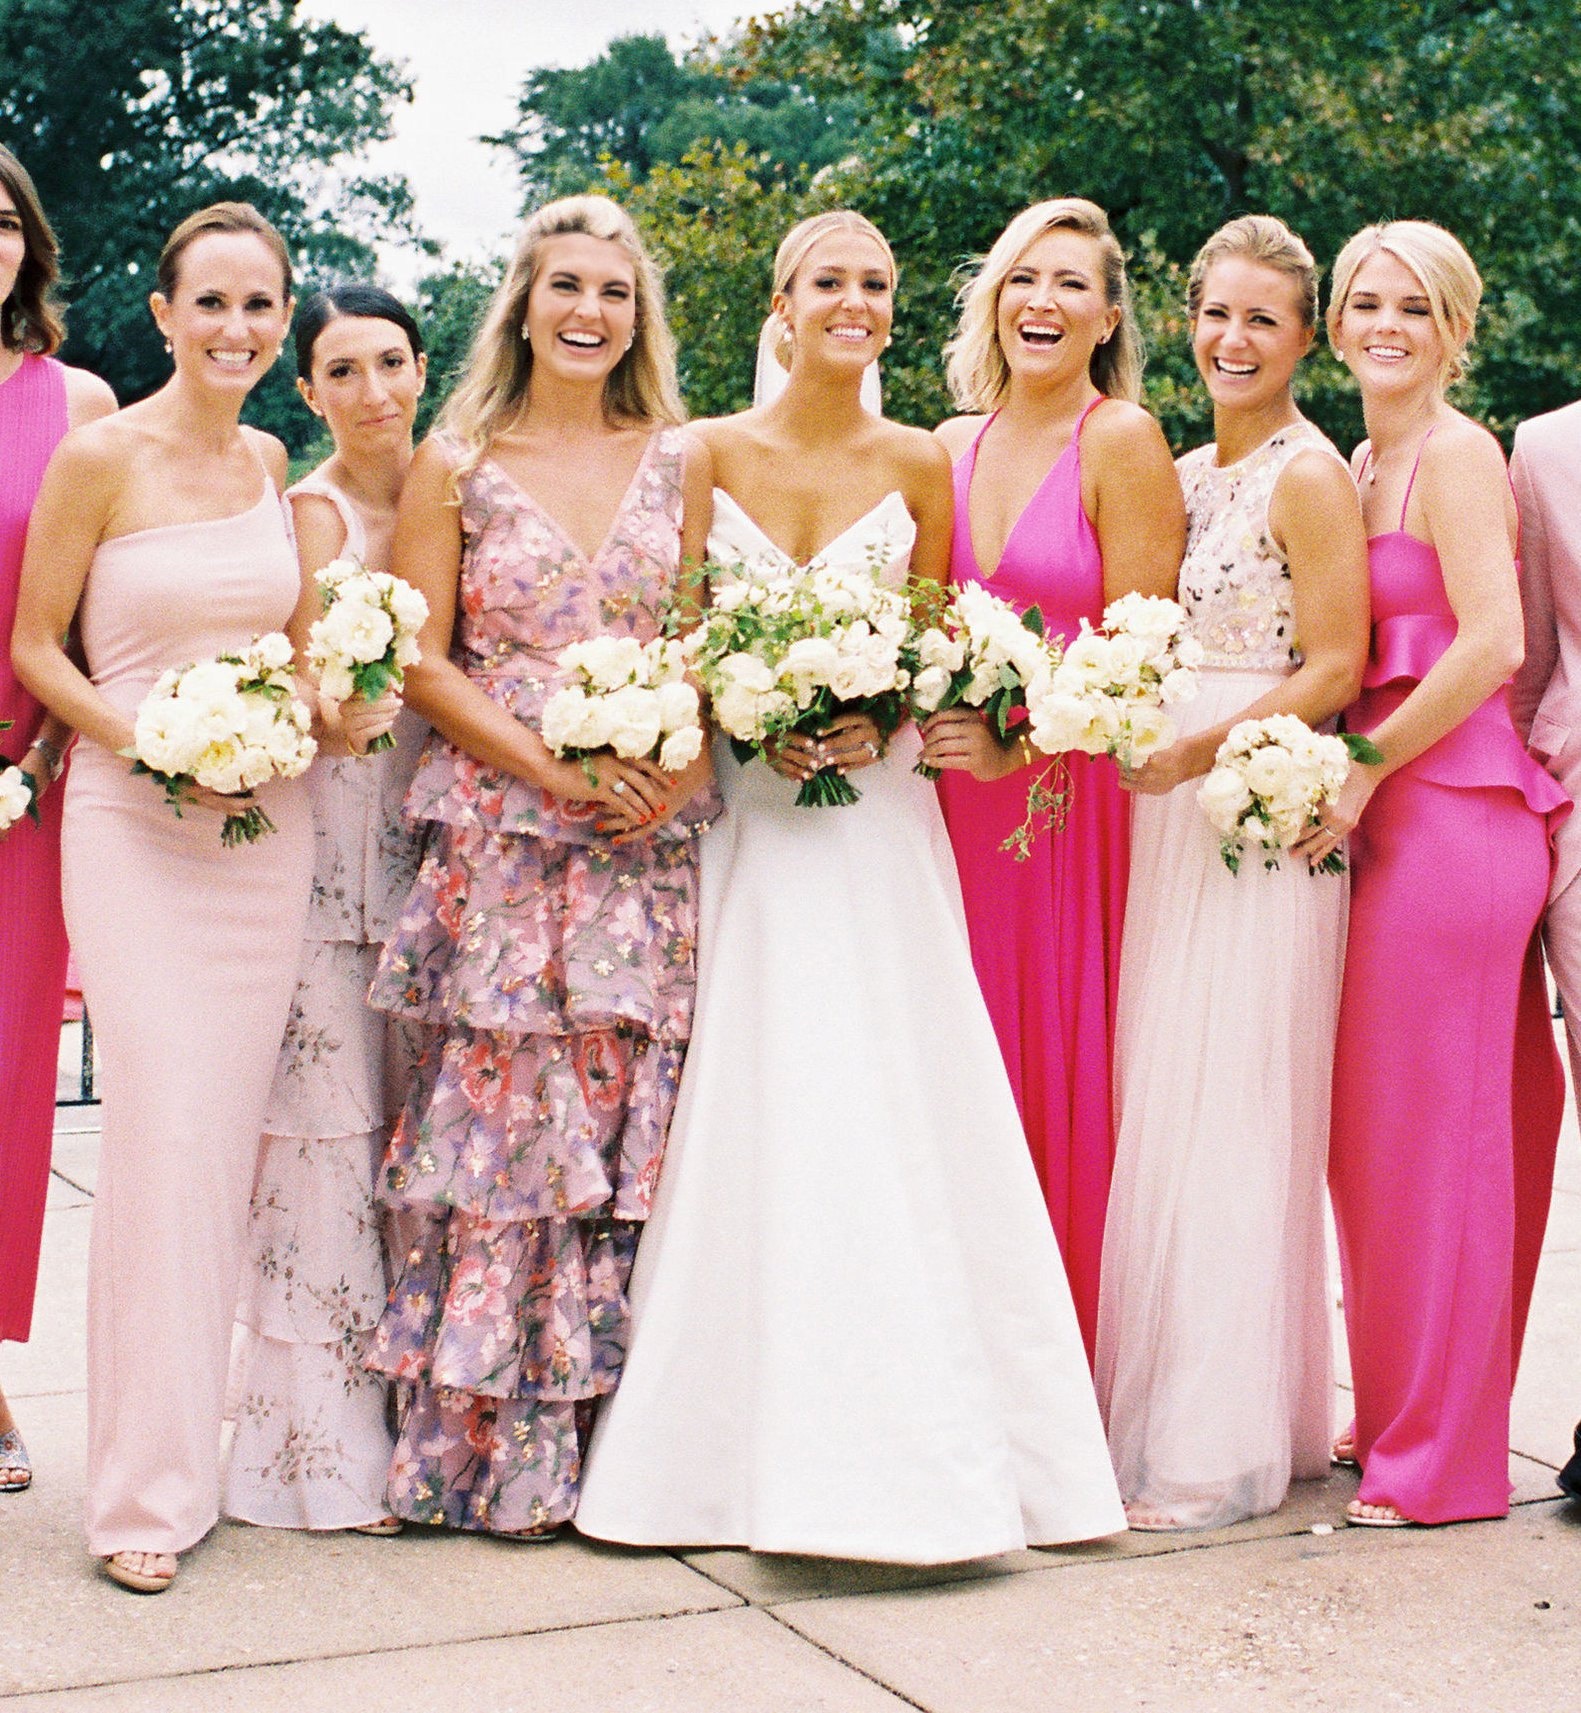 These 'Pretty In Pink' Mix-and-Match Bridesmaids Dresses